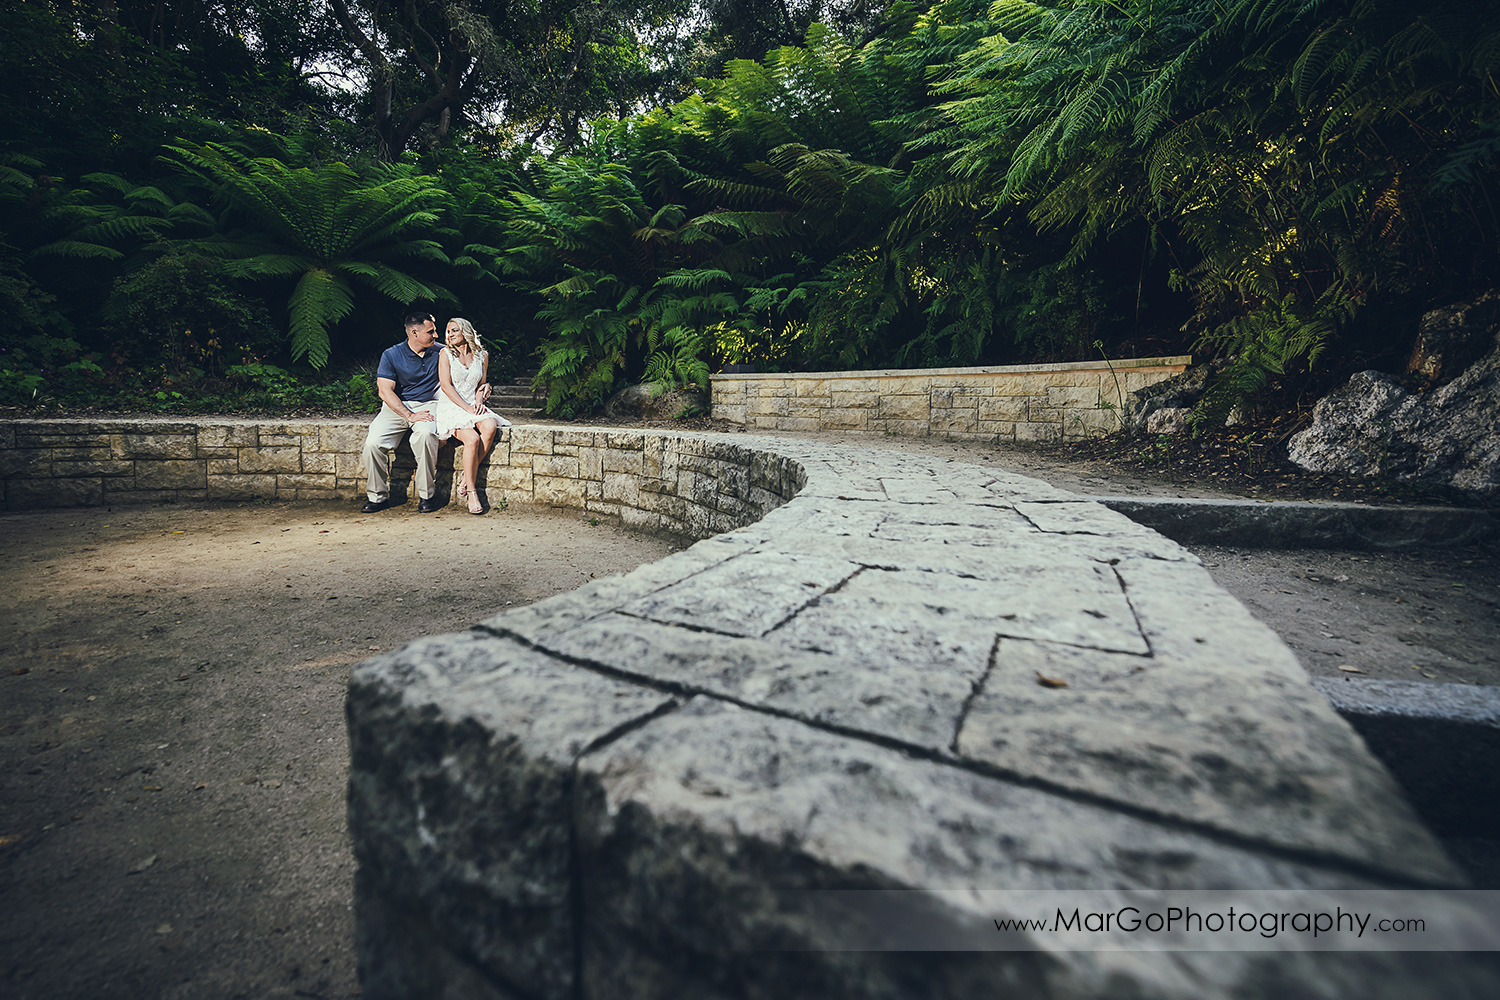 wide angle portrait of man in navy blue shirt and woman in white dress sitting on stone wall during engagement session at San Francisco Golden Gate Park